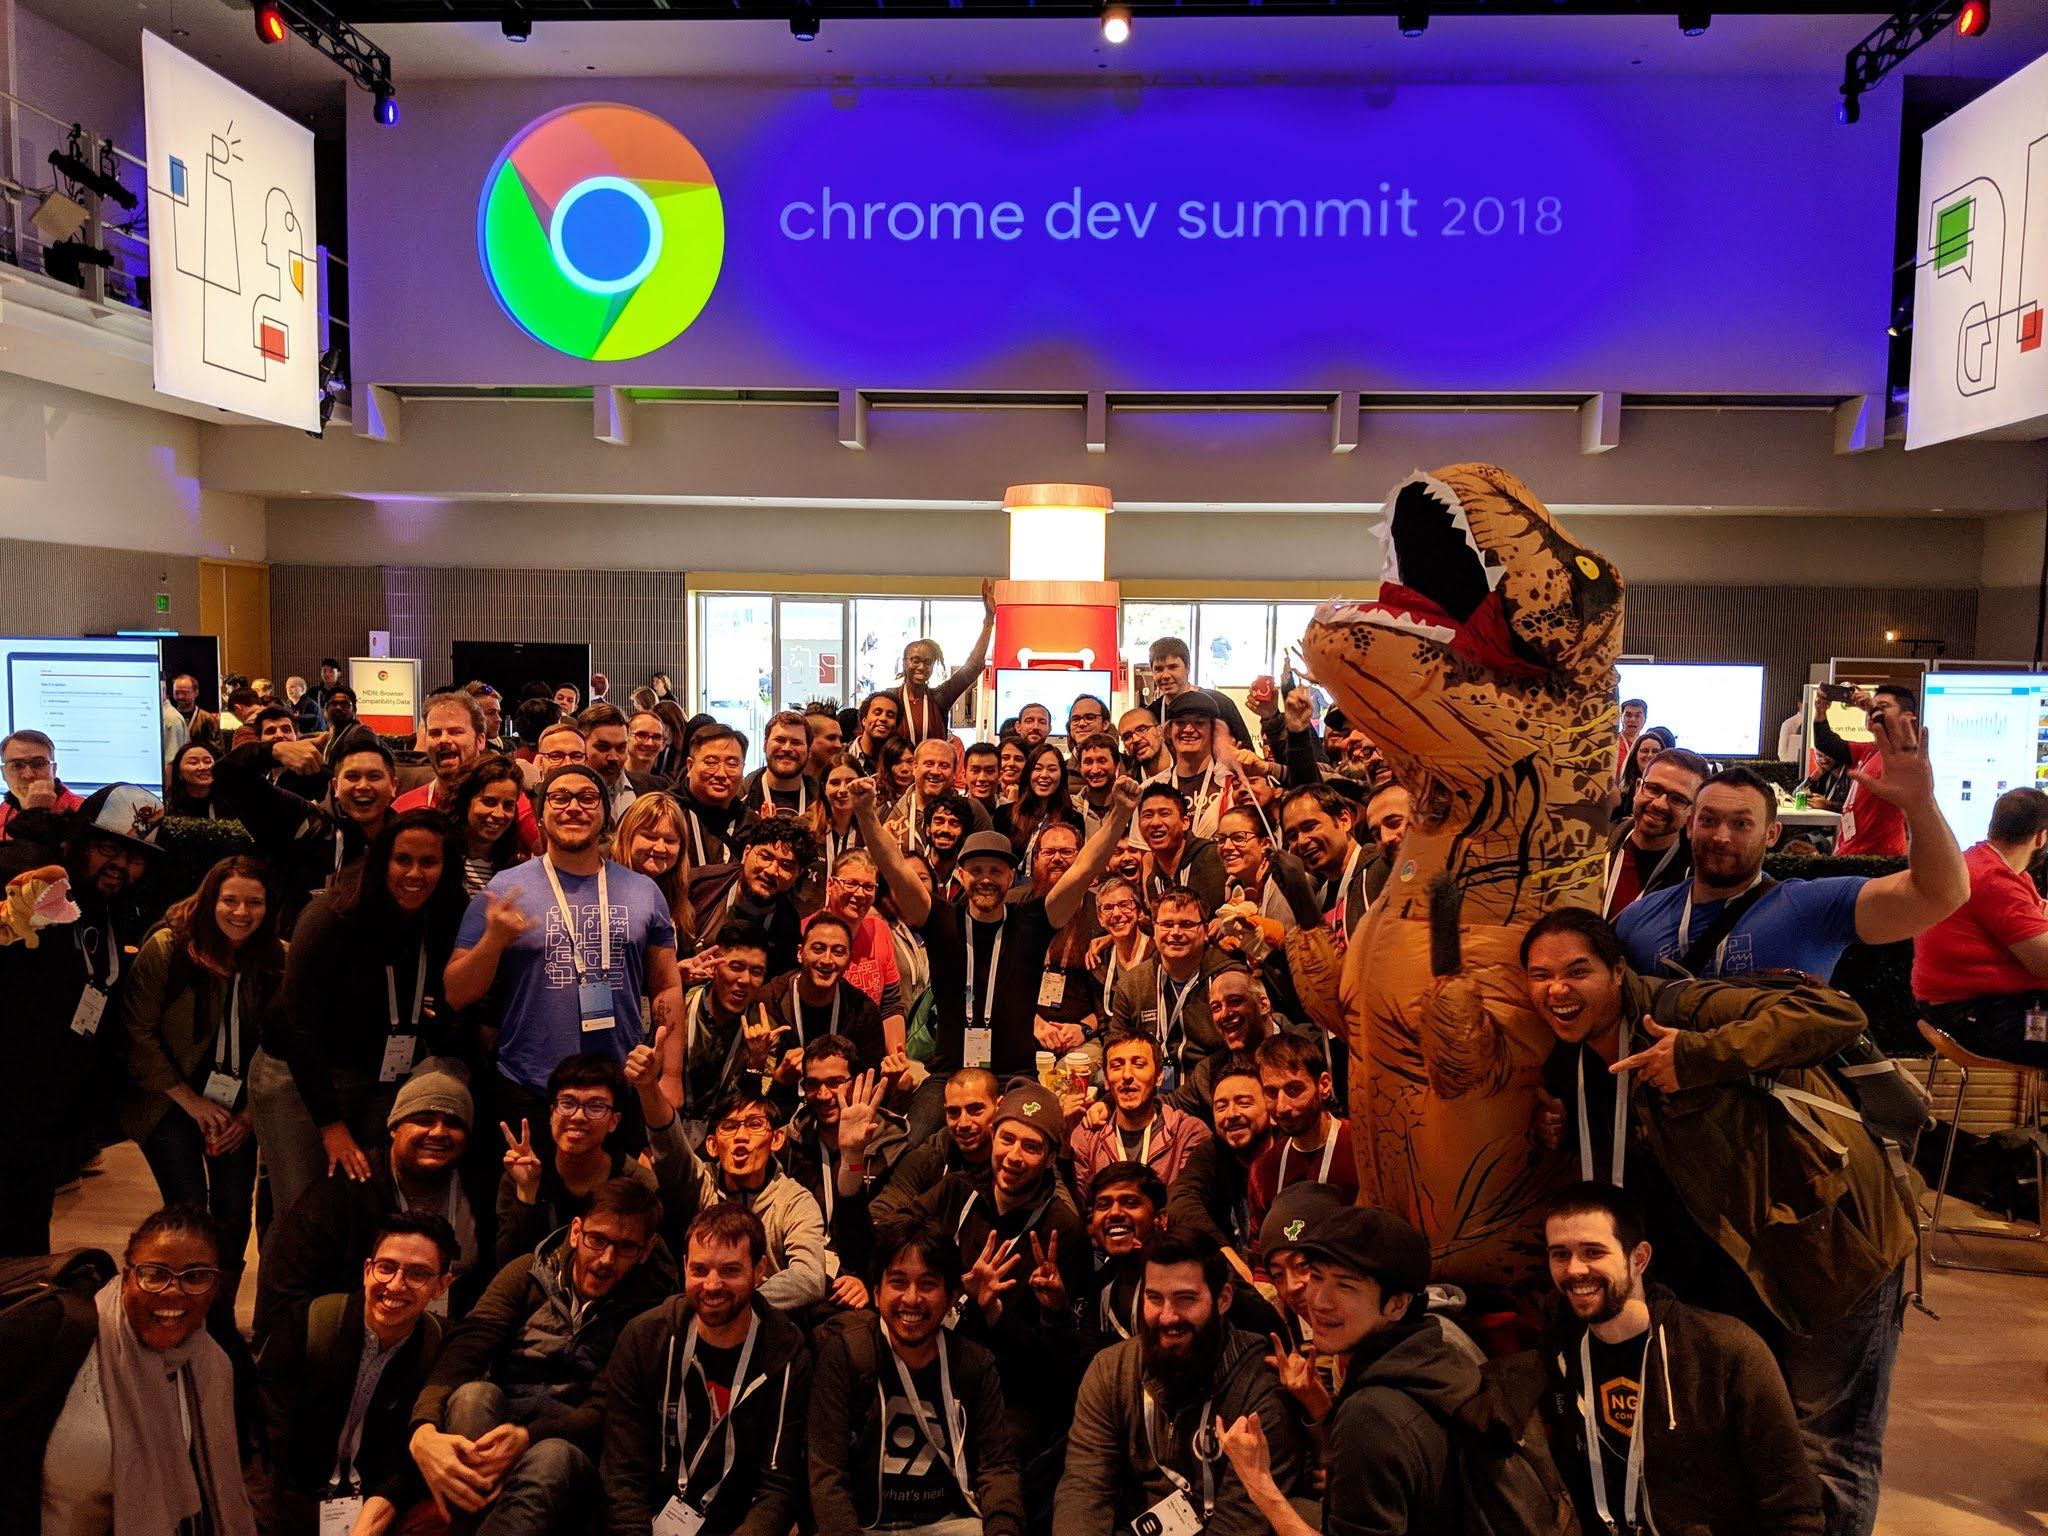 Group photo of attendees at Chrome Dev Summit with a person in a dinosaur costume